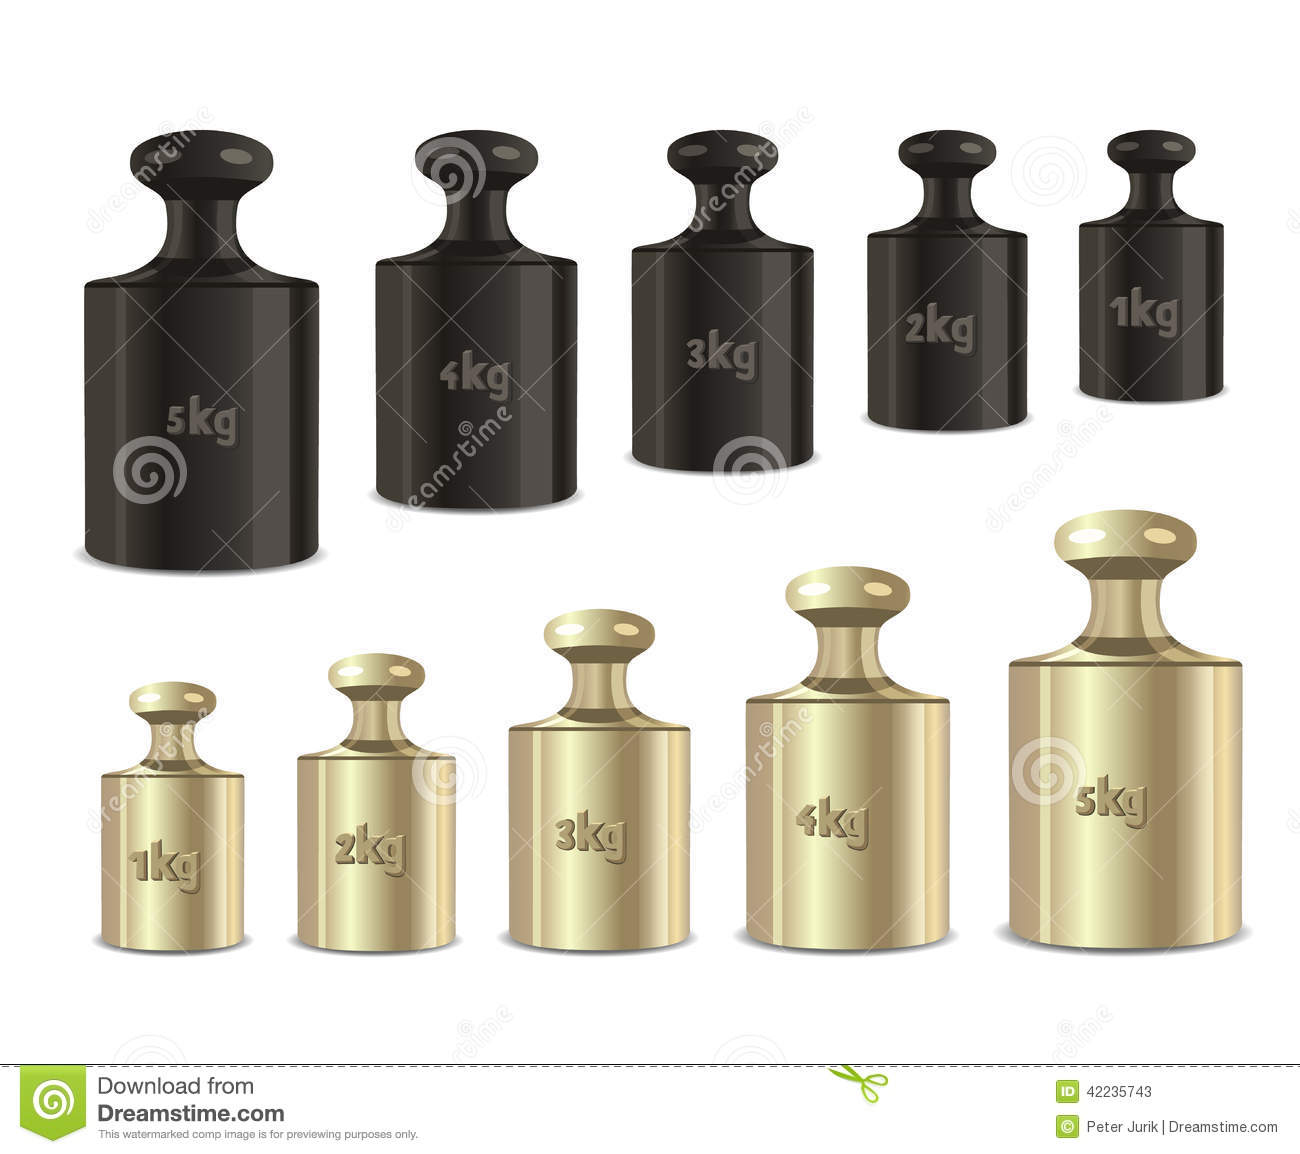 ed8e0c0df79 Calibration Weights Stock Illustrations – 65 Calibration Weights Stock  Illustrations